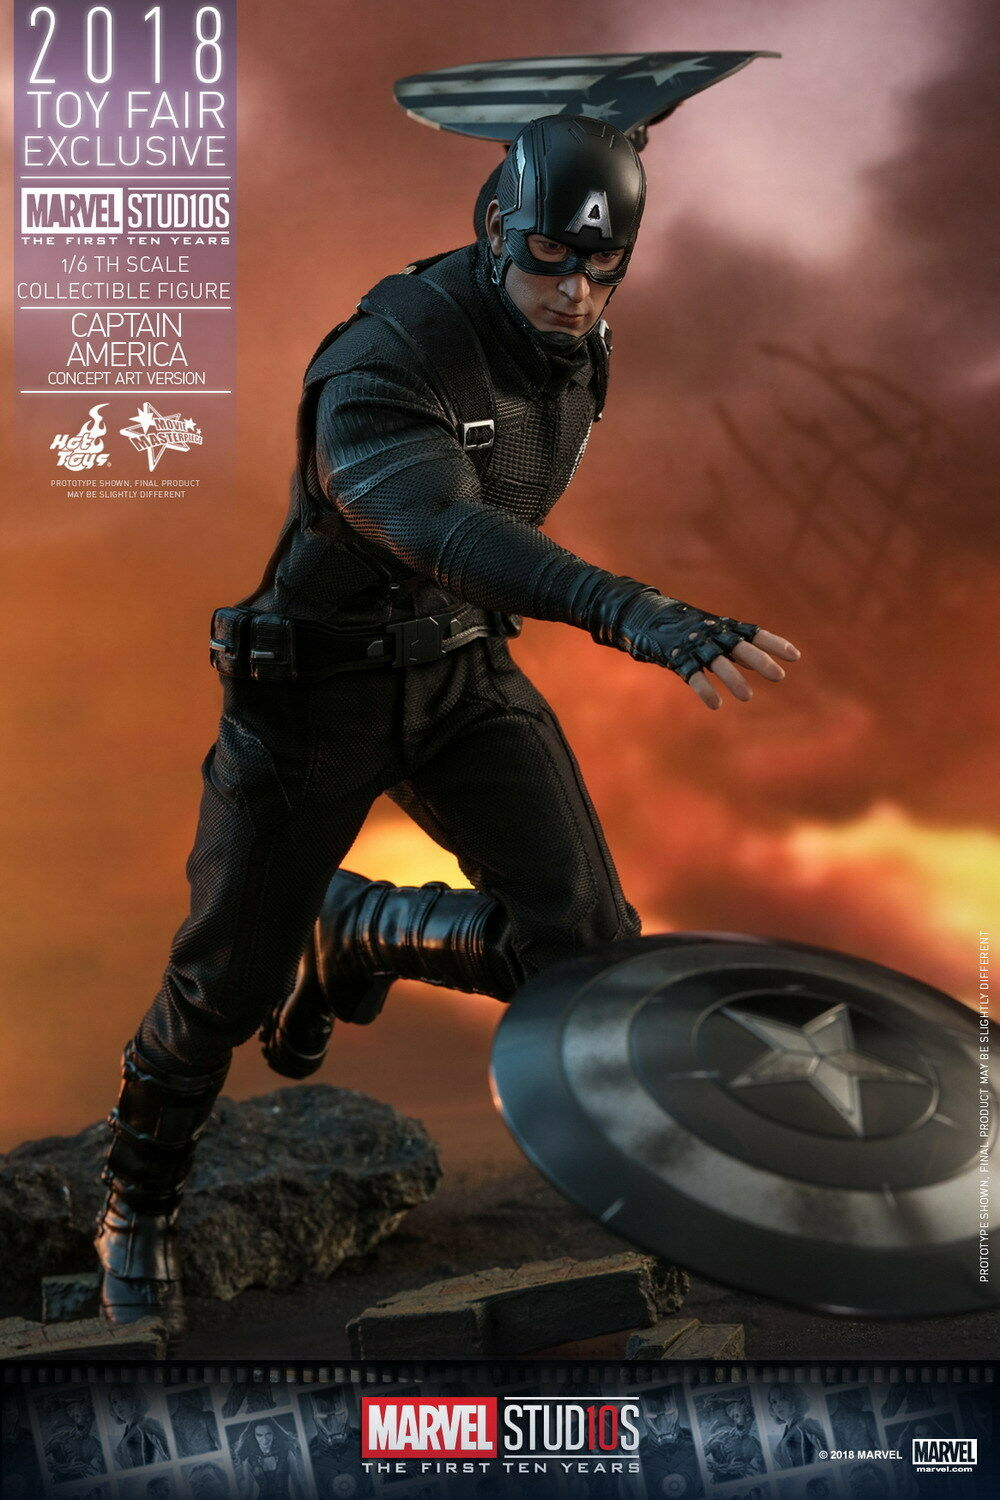 CAPTAIN AMERICA - Concept Art 1 6th Scale Action Figure MMS488 (Hot Toys)  NEW